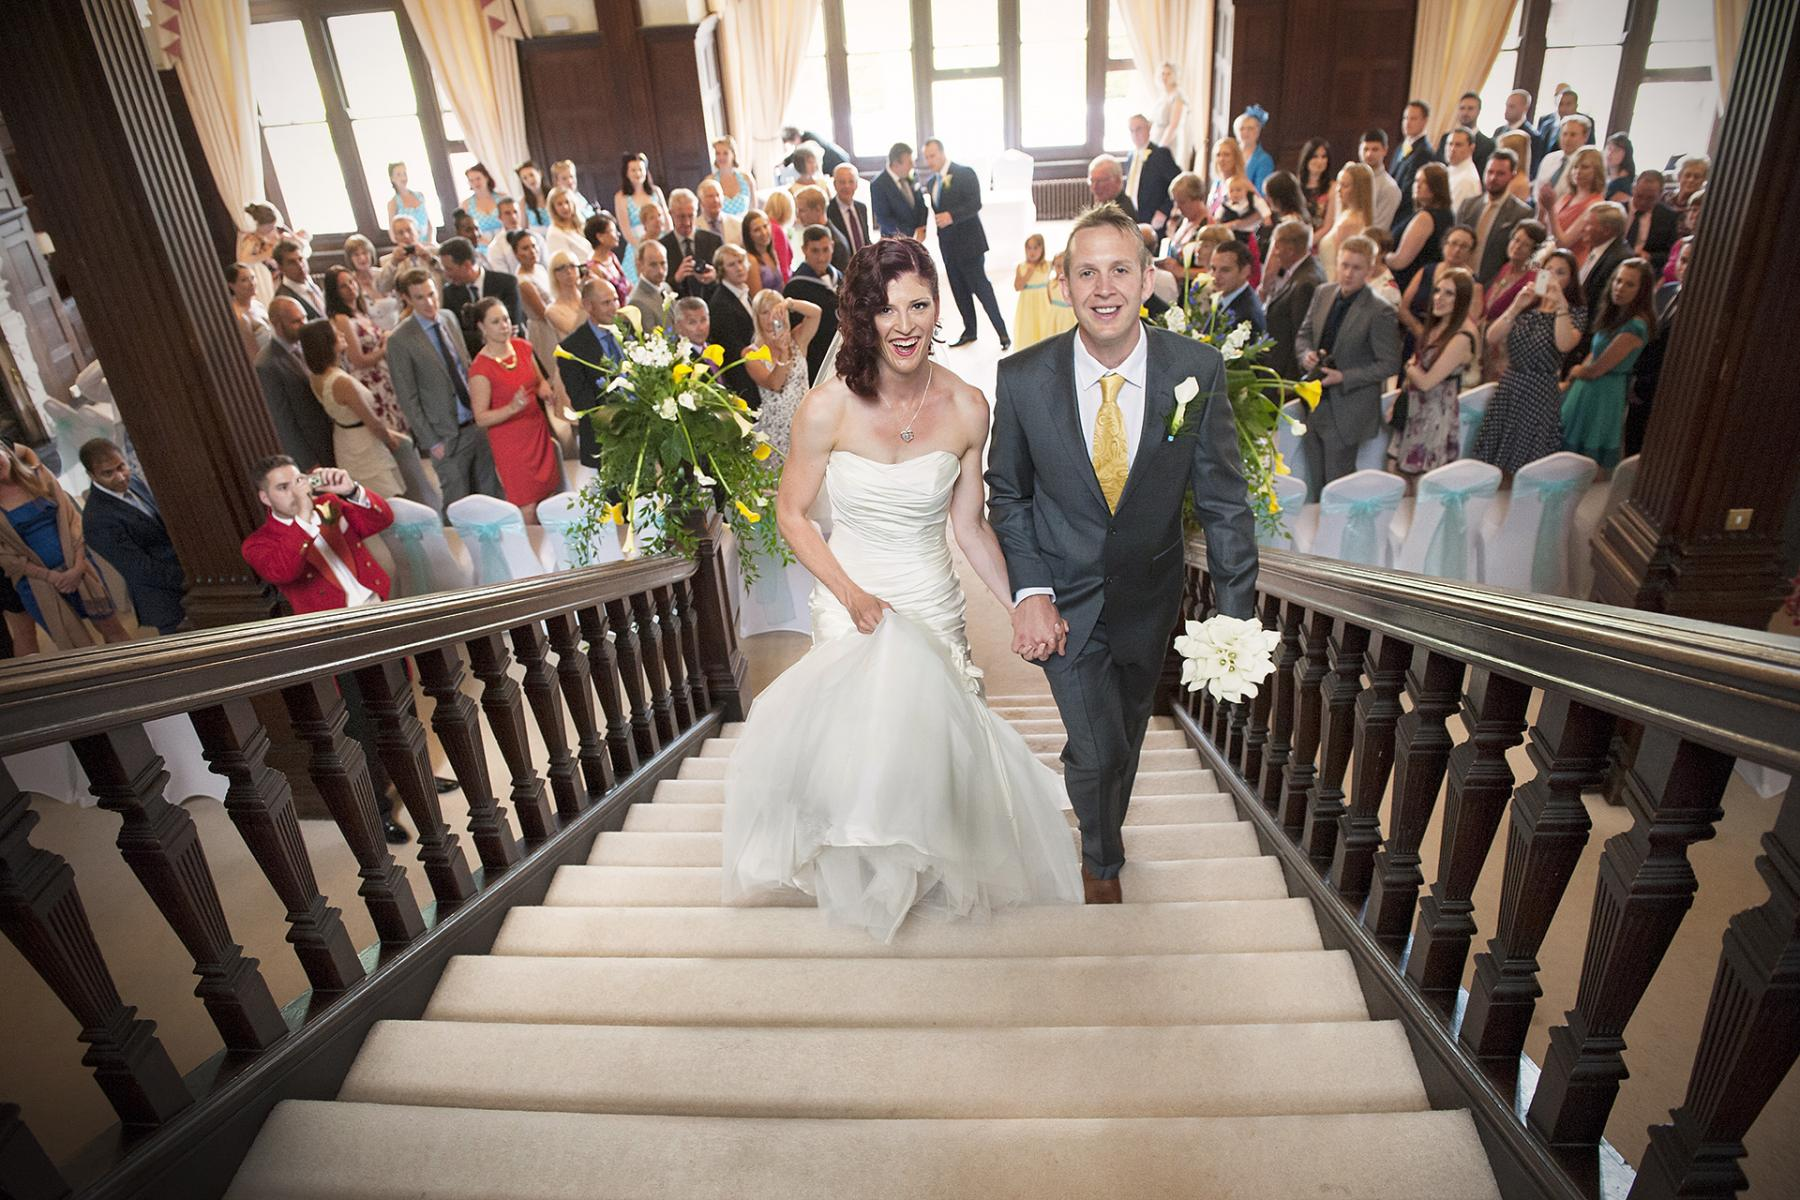 Buckland-hall wedding-photographer-bride-groom-staircase-civil-wedding-ceremony-south-wales-vegetarian-wedding-venues